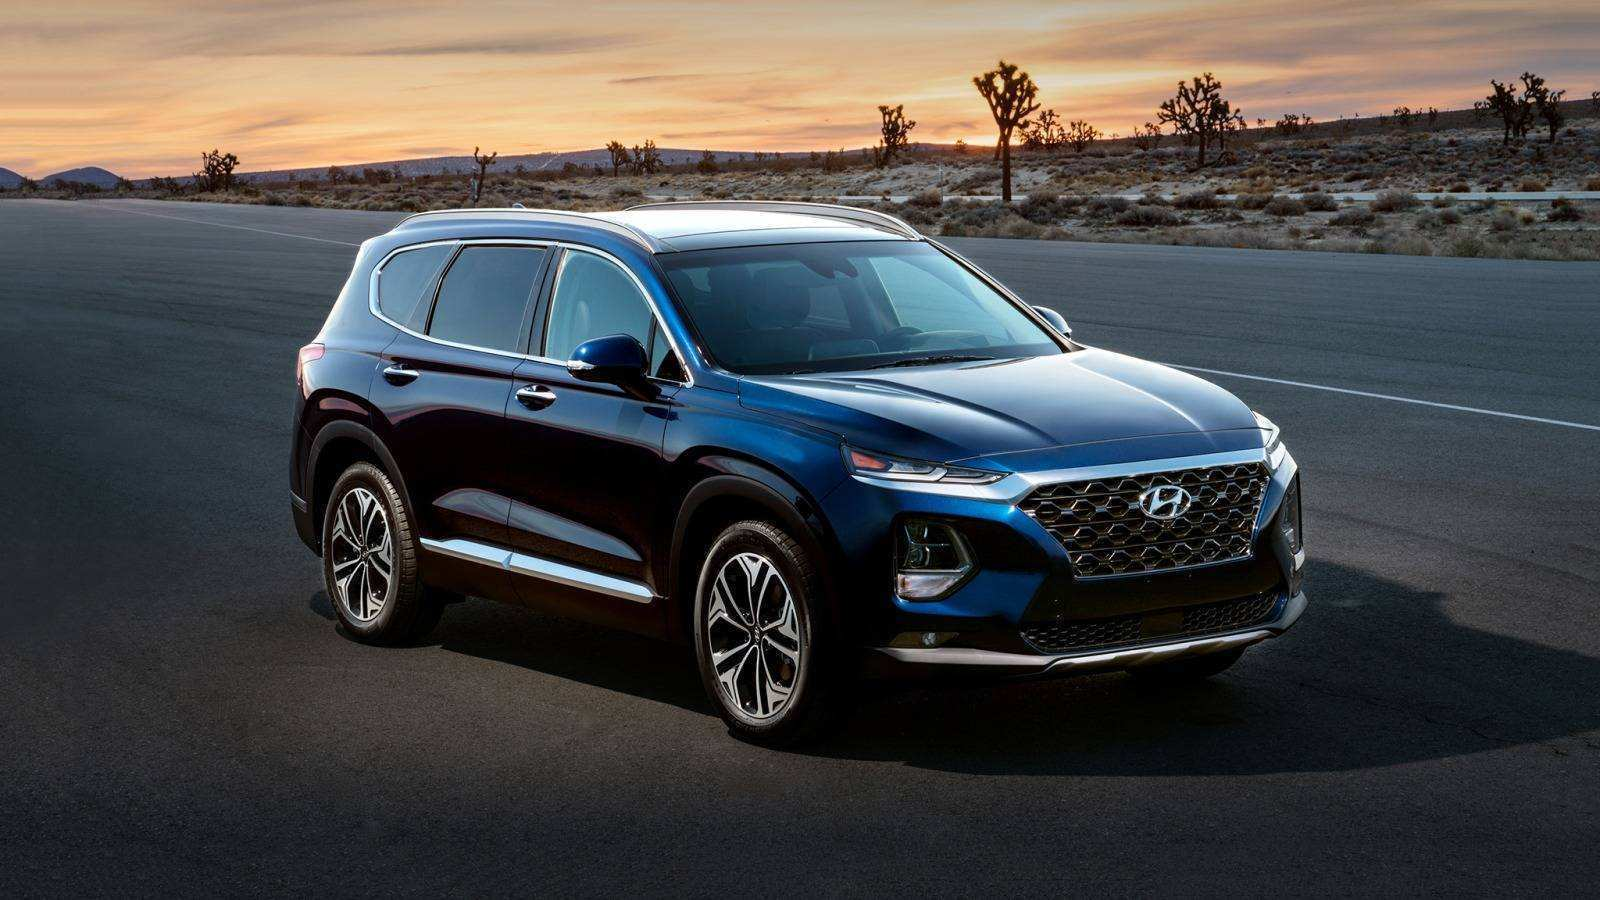 70 New 2019 Hyundai 8 Passenger Price and Review by 2019 Hyundai 8 Passenger